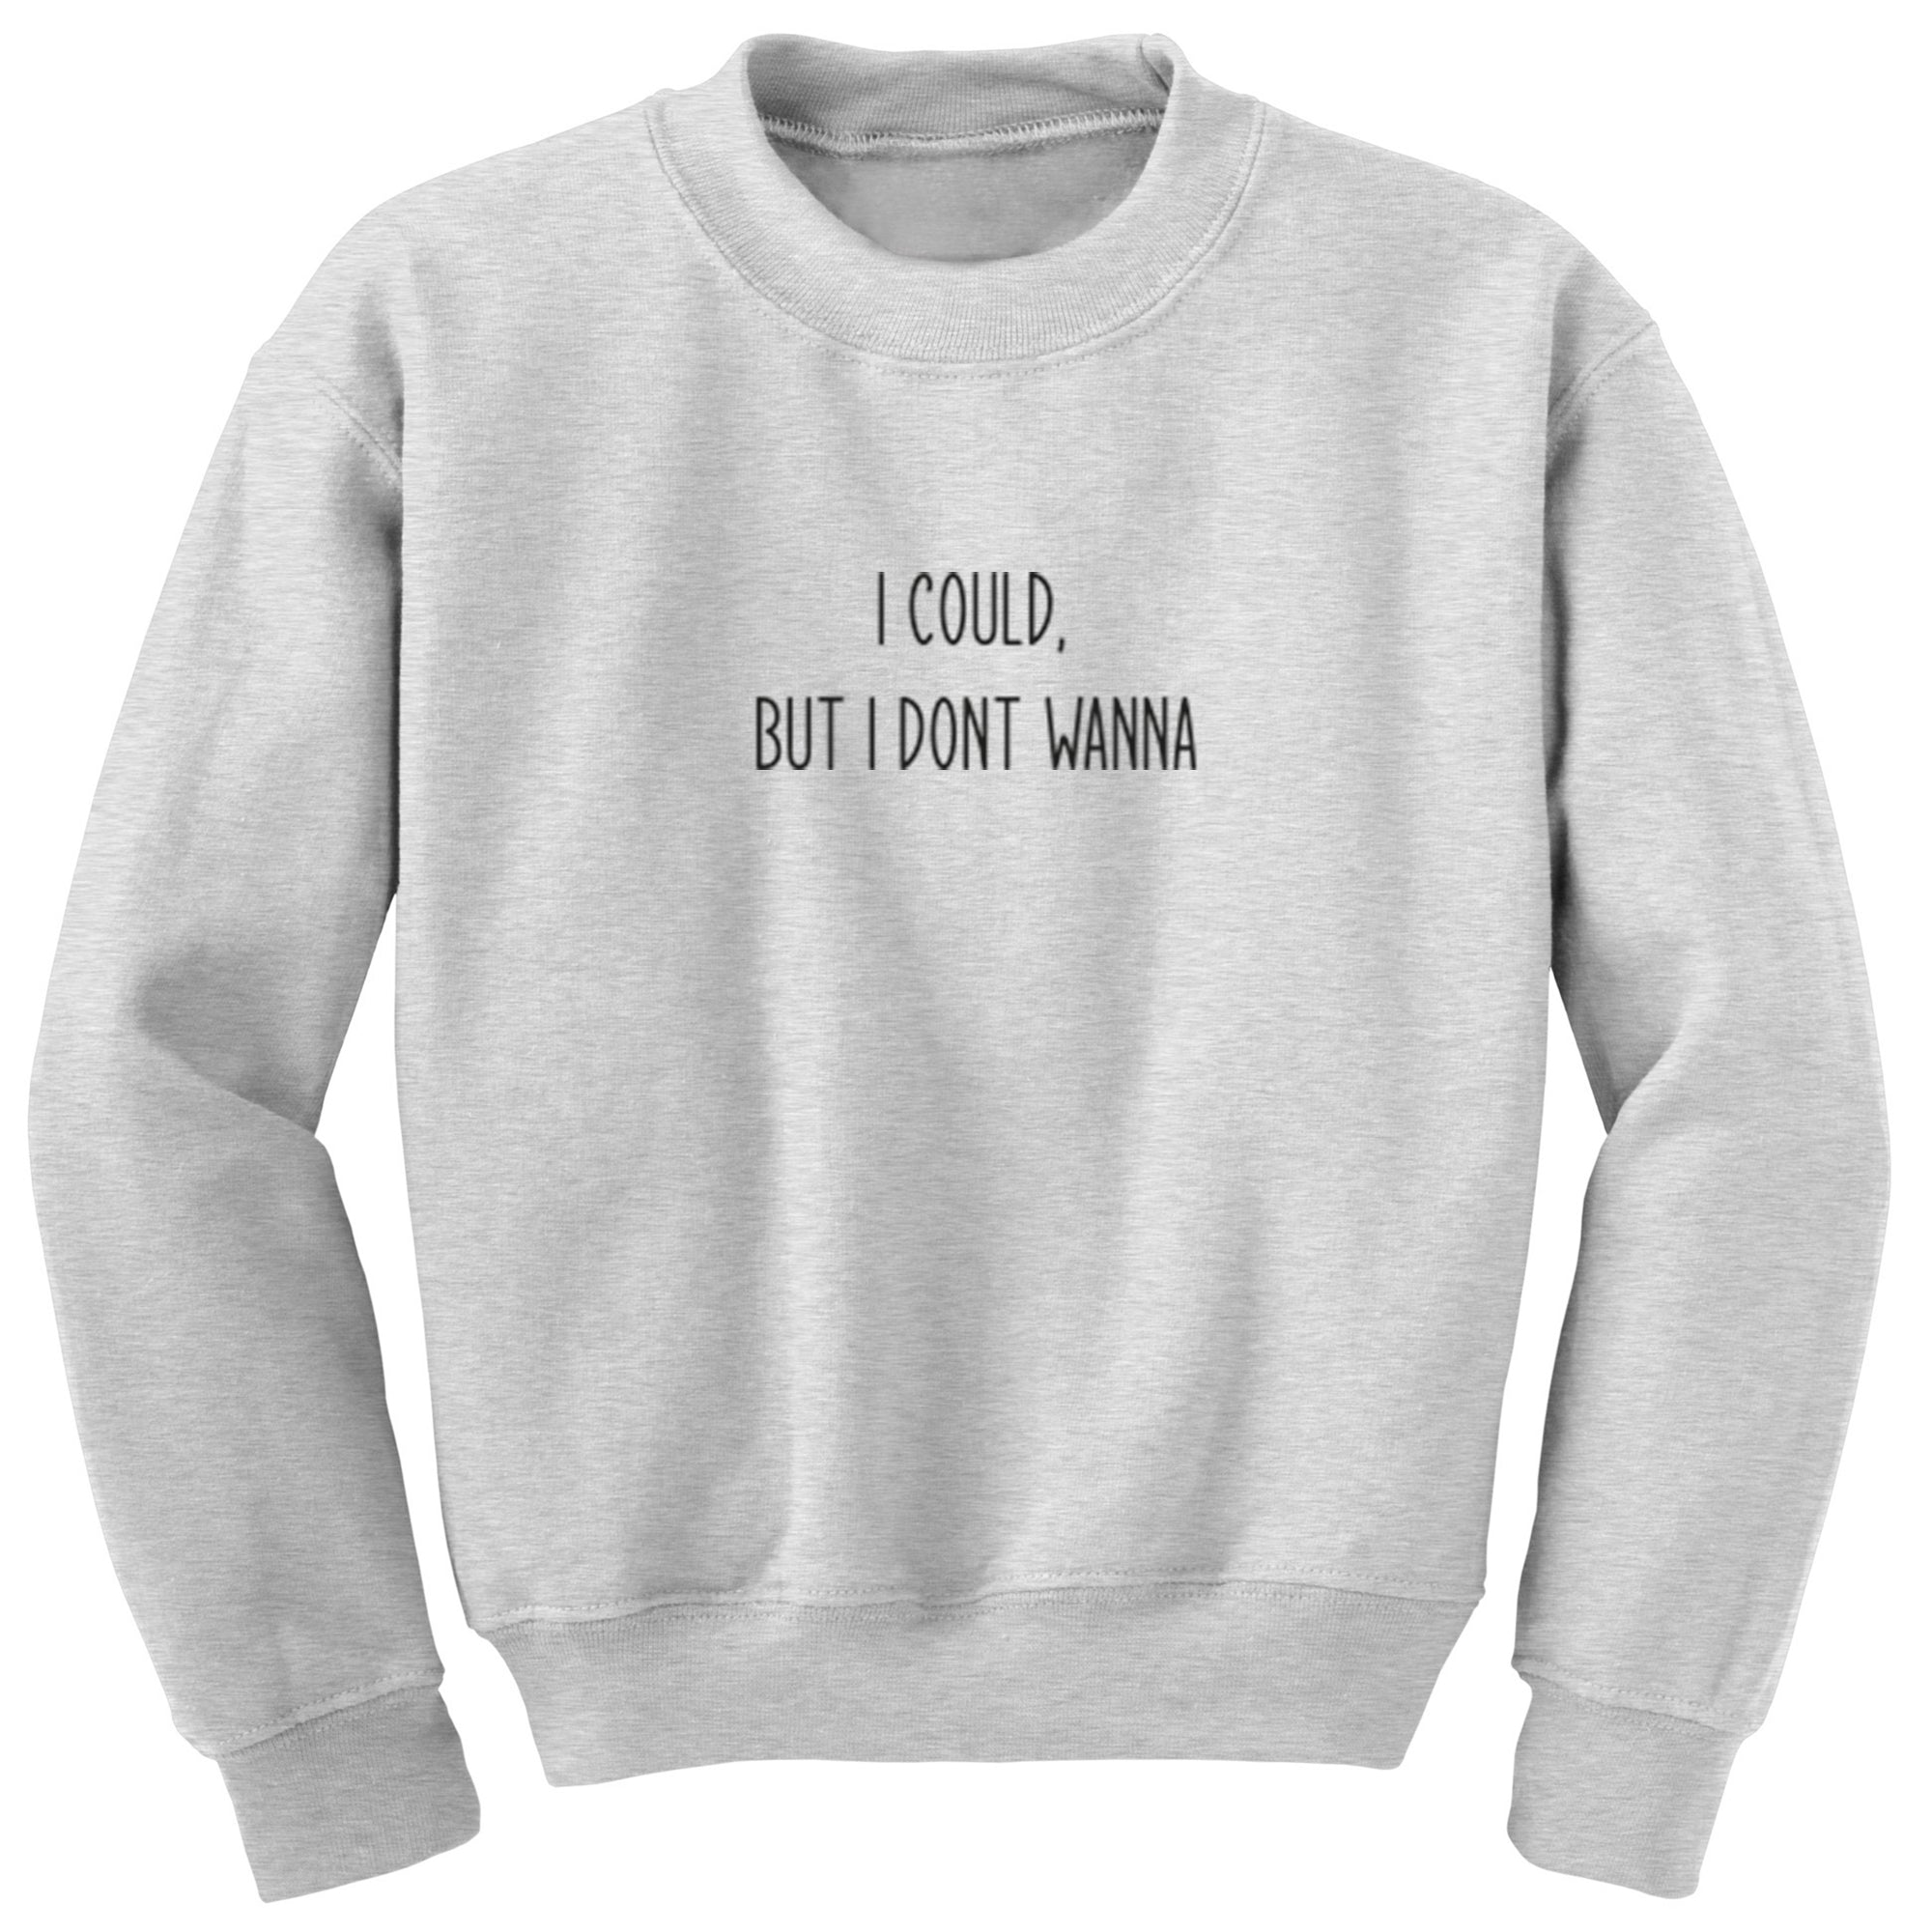 I Could, But I Don't Wanna Unisex Jumper S1206 - Illustrated Identity Ltd.